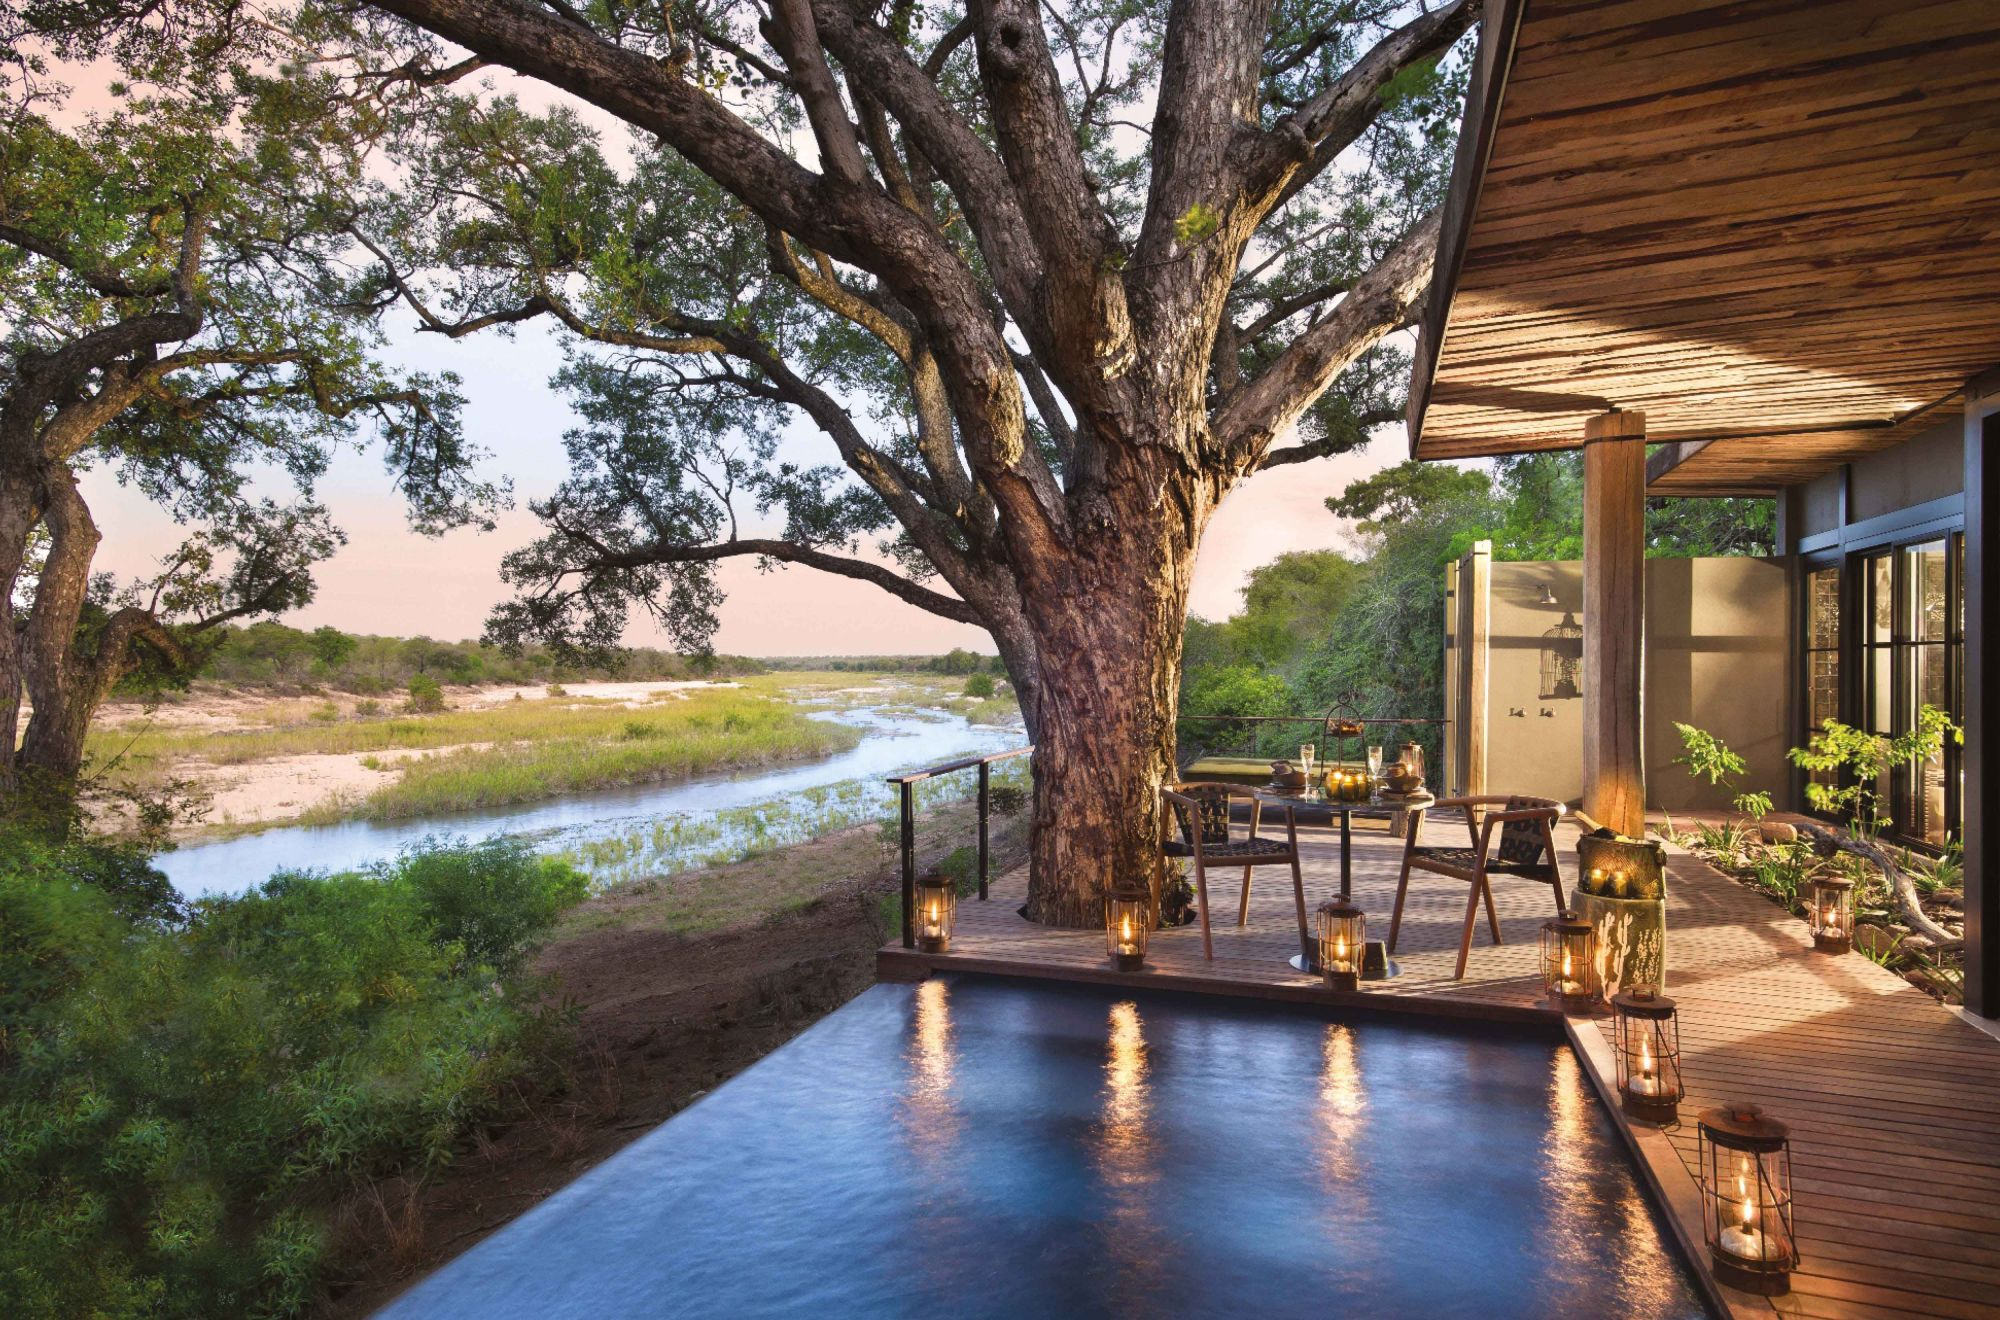 Honeymoon Ideas: Get Close To Wildlife At And Beyond Tengile River Lodge